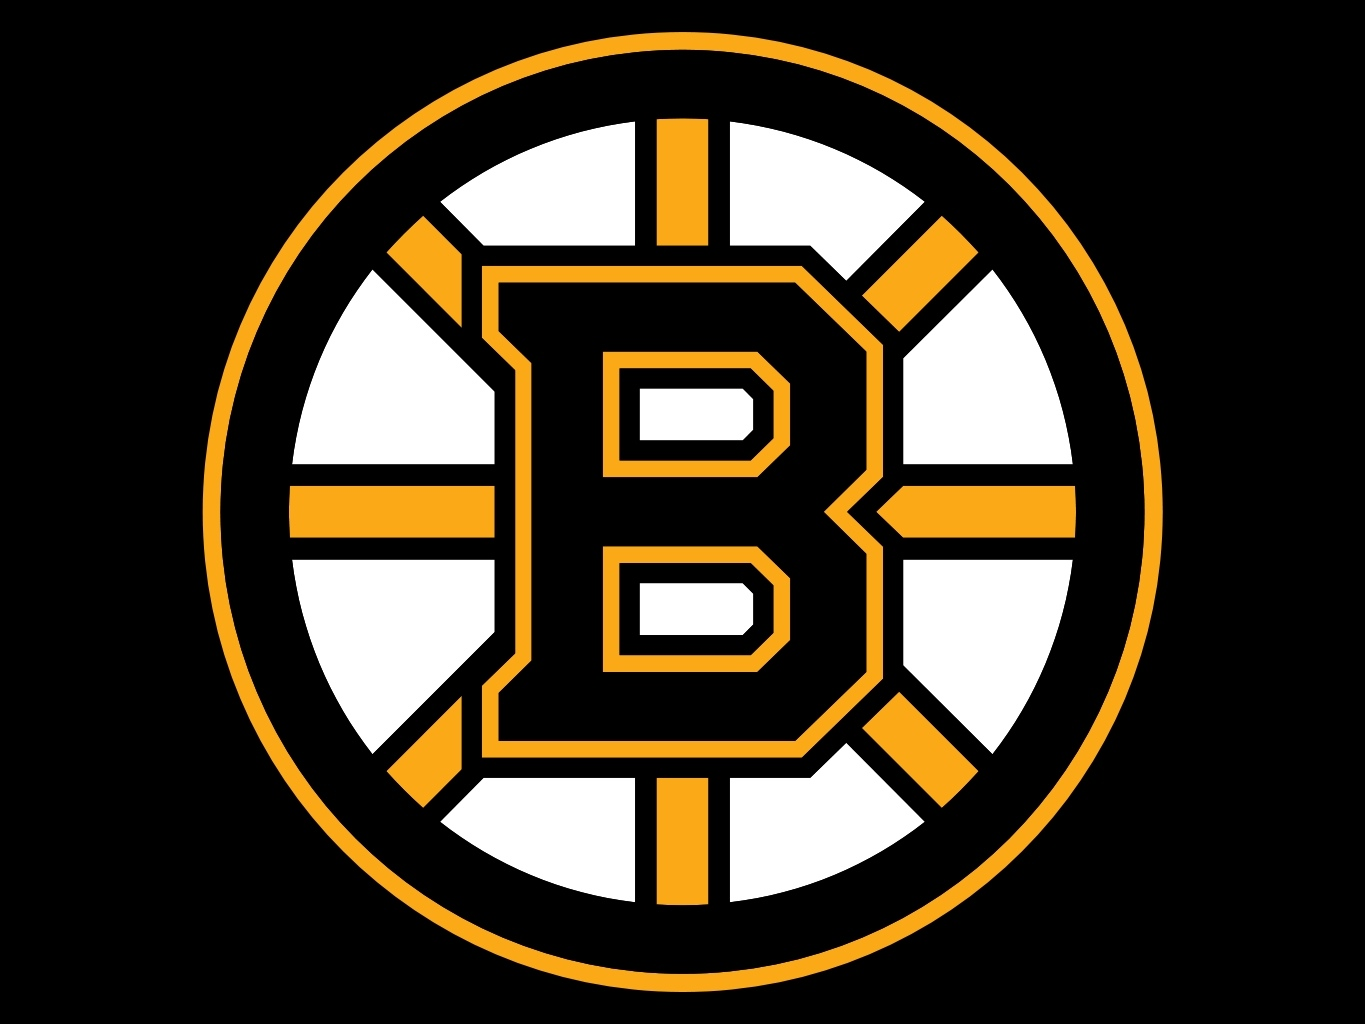 Boston bruins logo Wallpaper